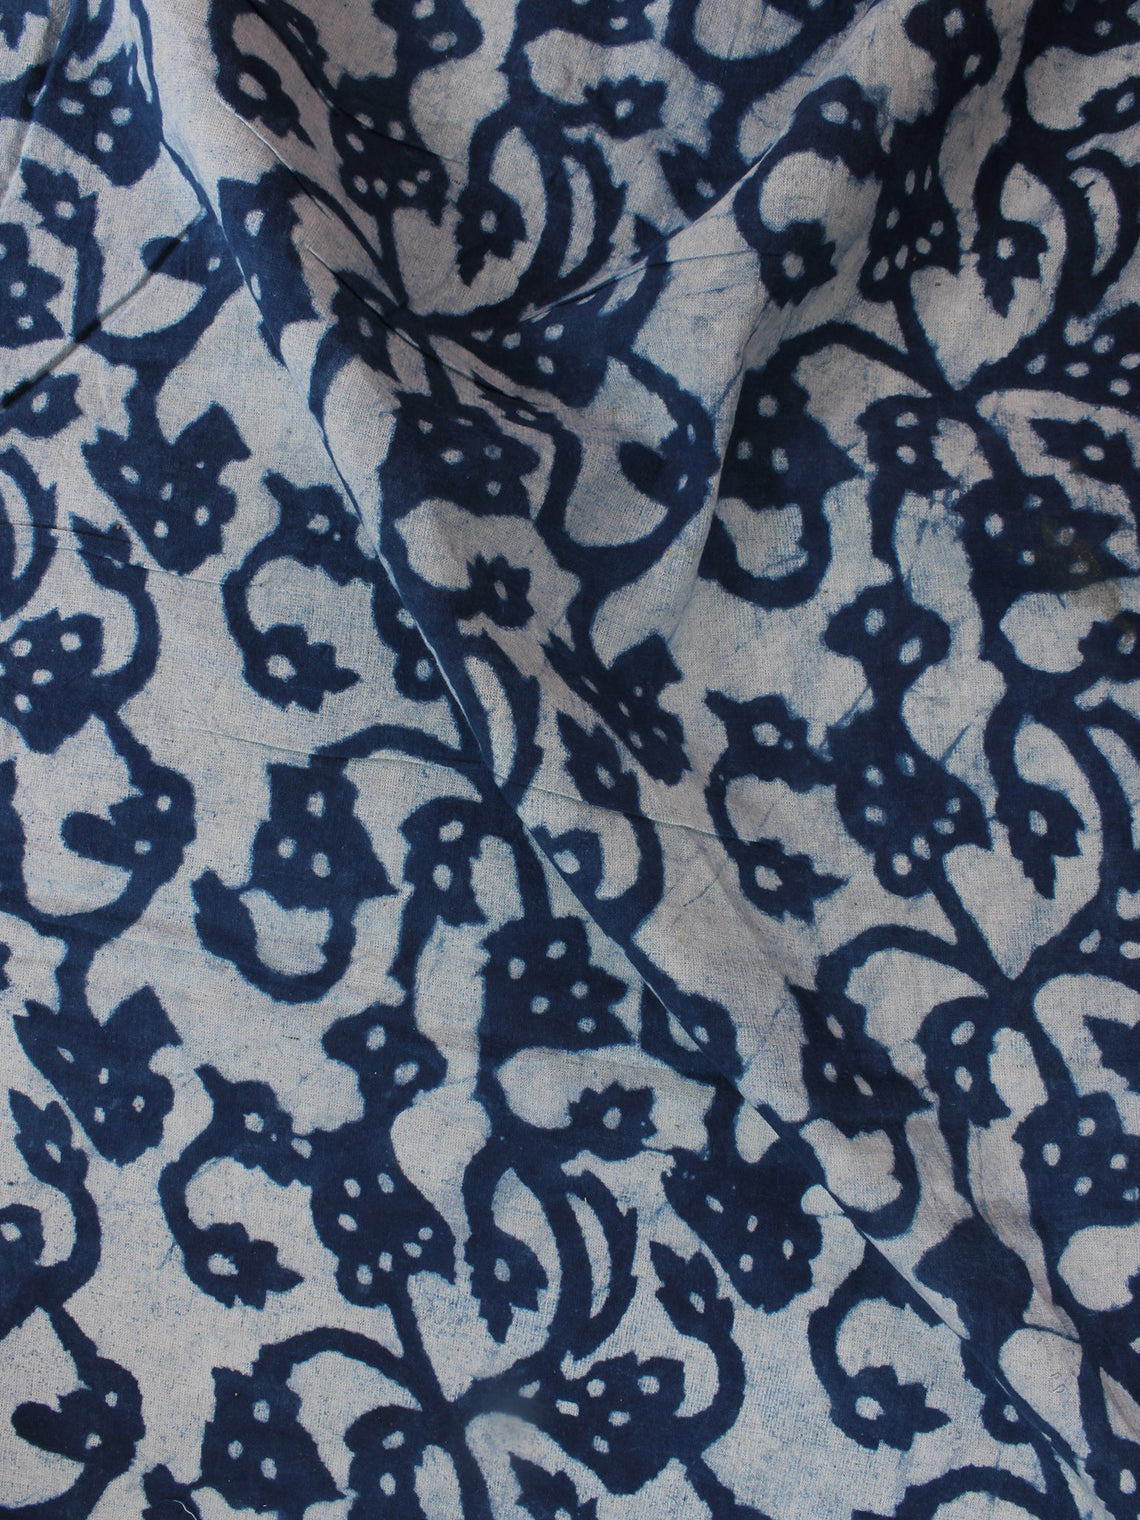 Indigo White Hand Block Printed Cotton Fabric Per Meter - F0916330